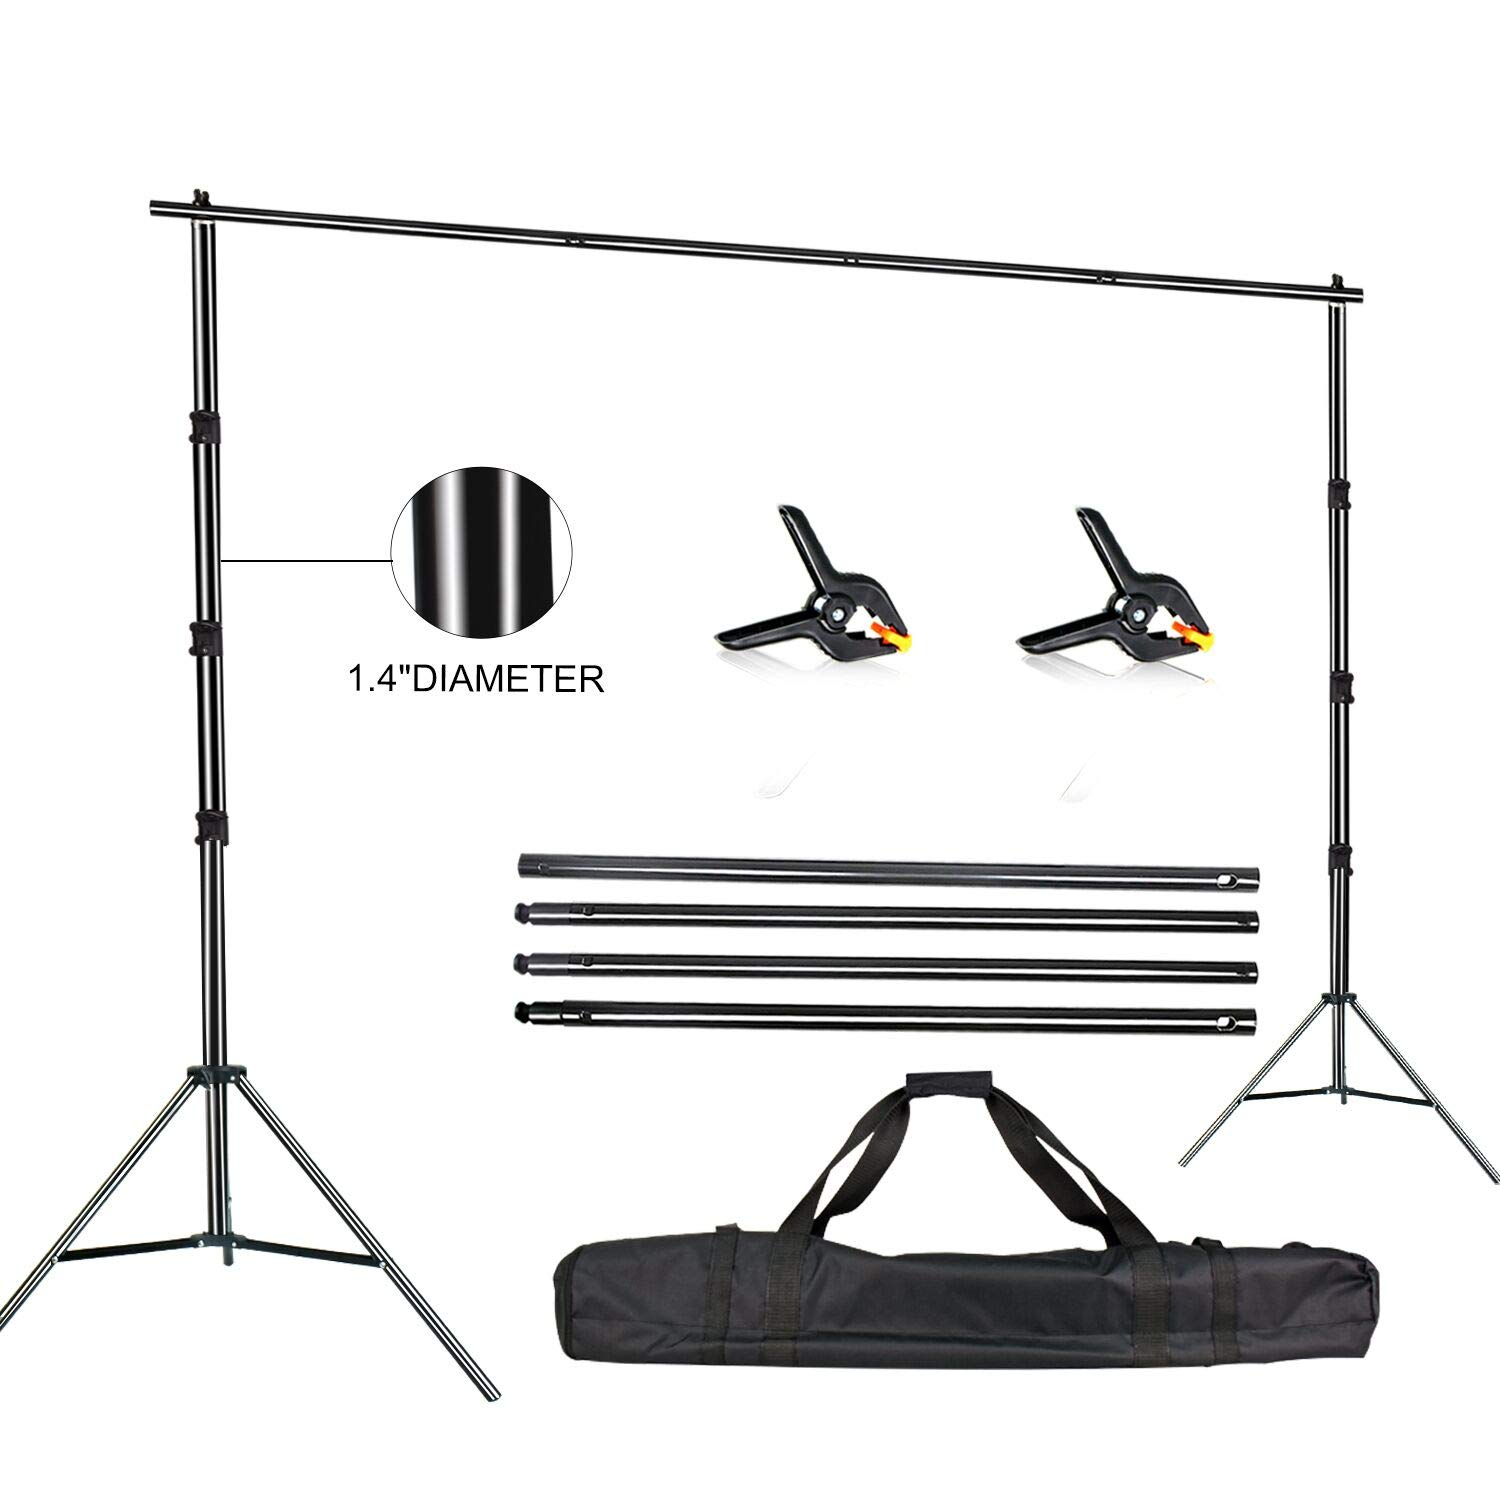 FUDESY Photo Video Studio 10 x 10Ft Heavy Duty Adjustable Backdrop Stand,Background Support System for Photography with Carry Bag,Two Pieces Spring Clamps by FUDESY